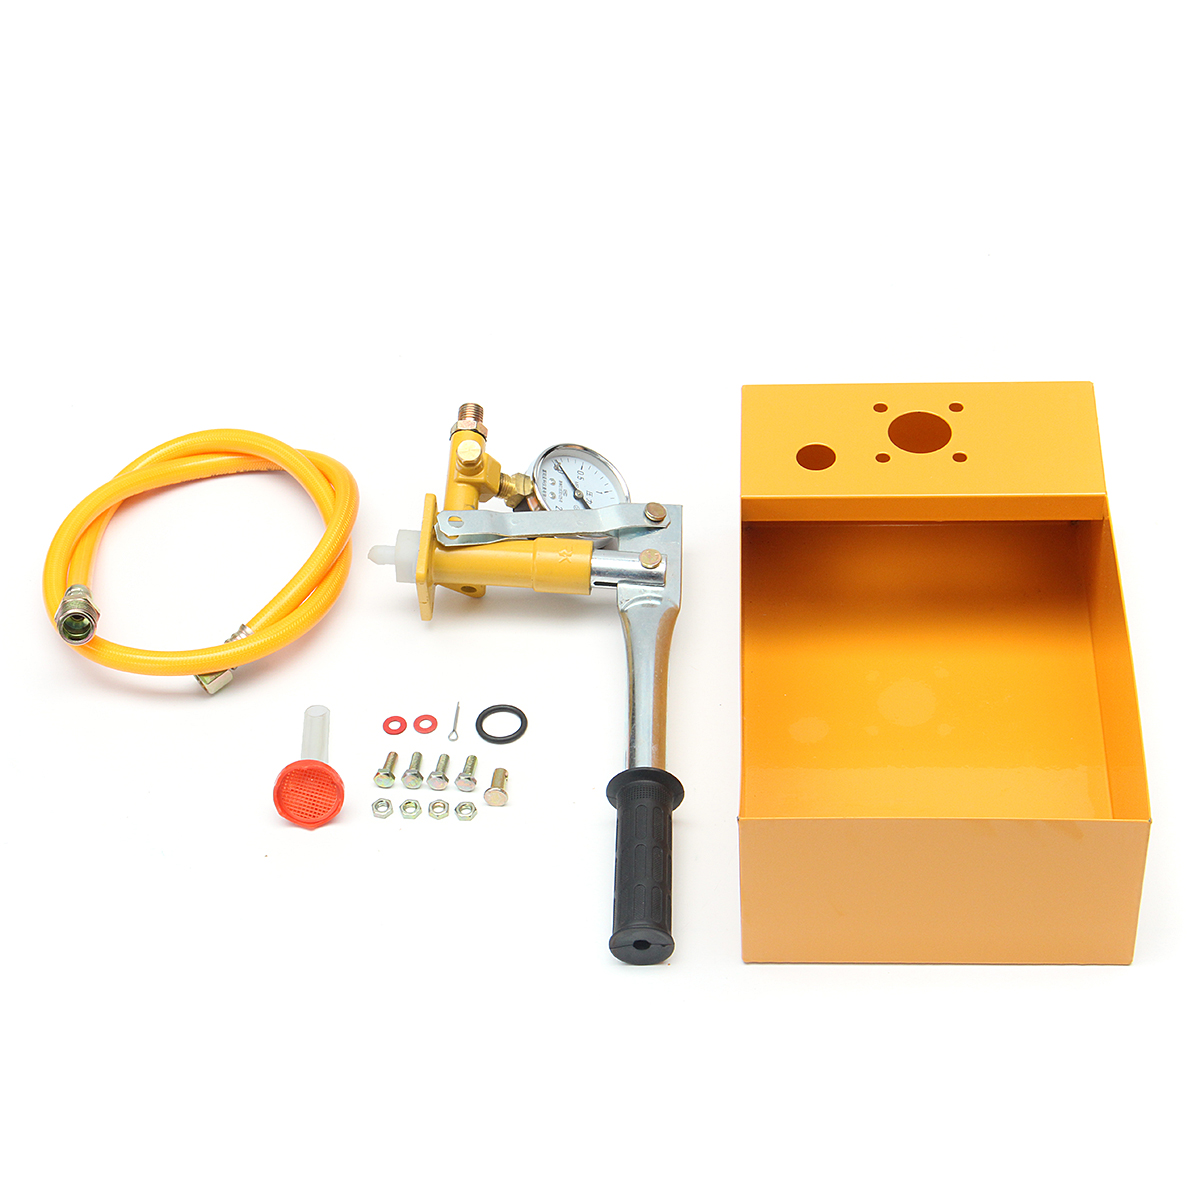 2.5Mpa 25kg Manual Hydraulic Water Pressure Pipeline Test Pump Machine Tools